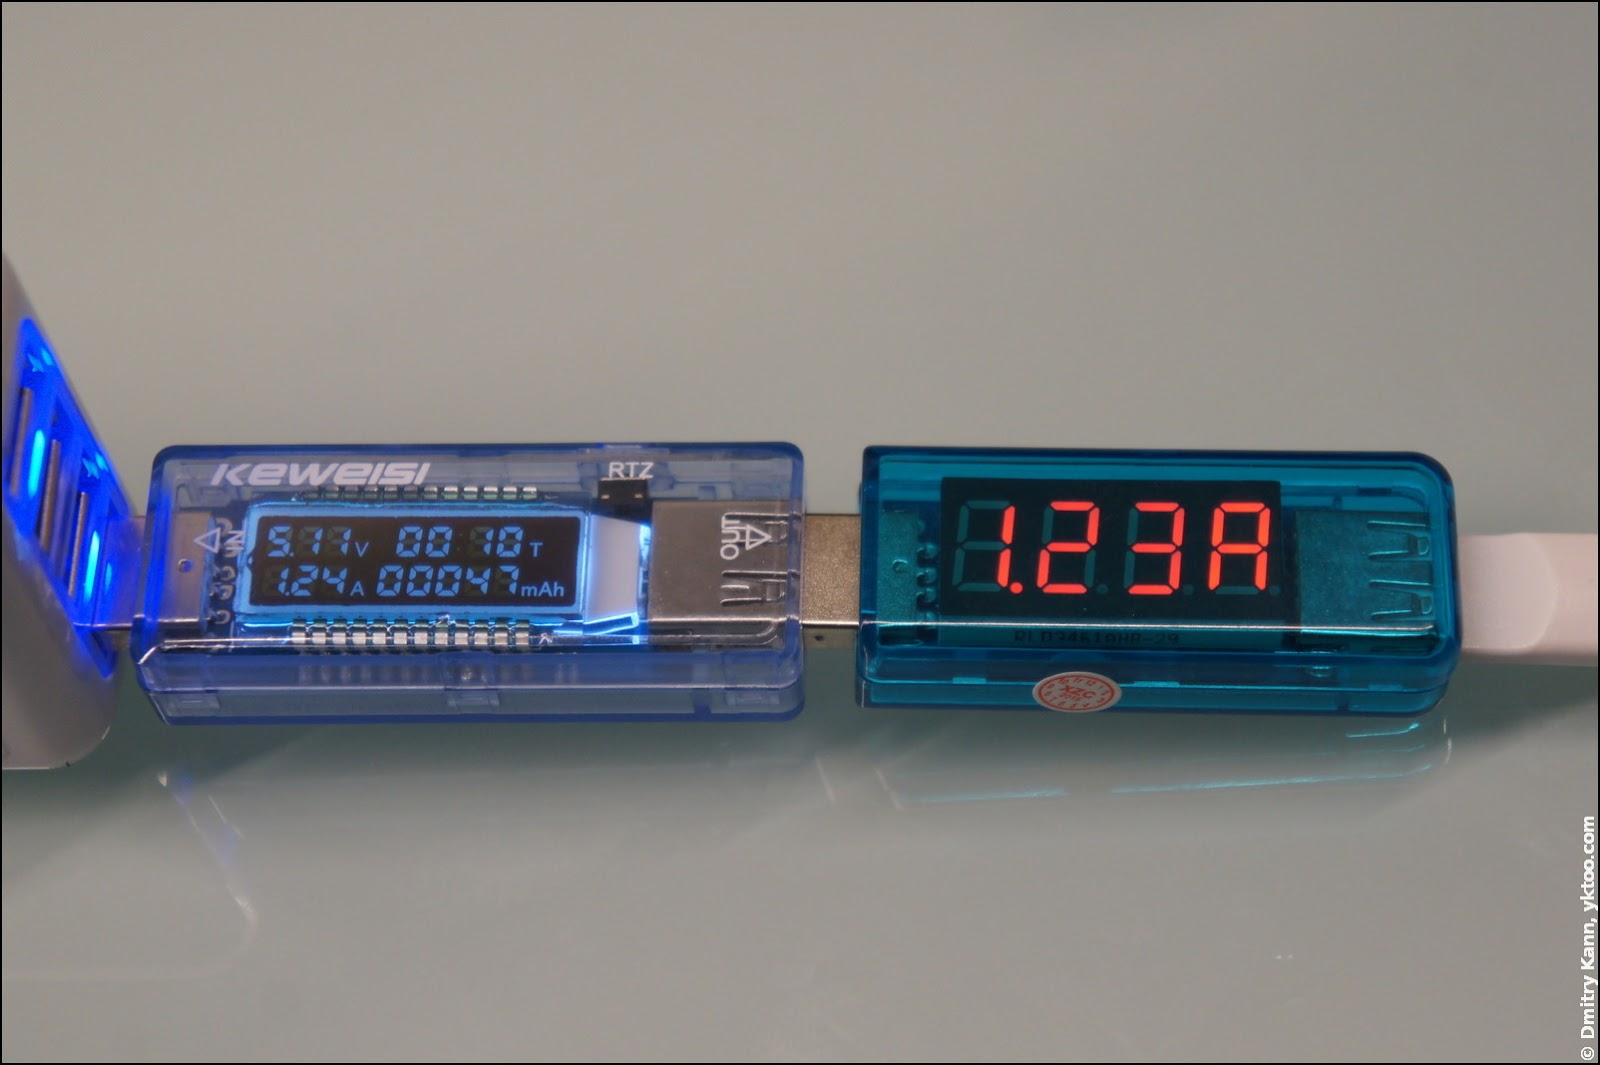 Measuring current by both testers, noname DC adapter 2.1 A.